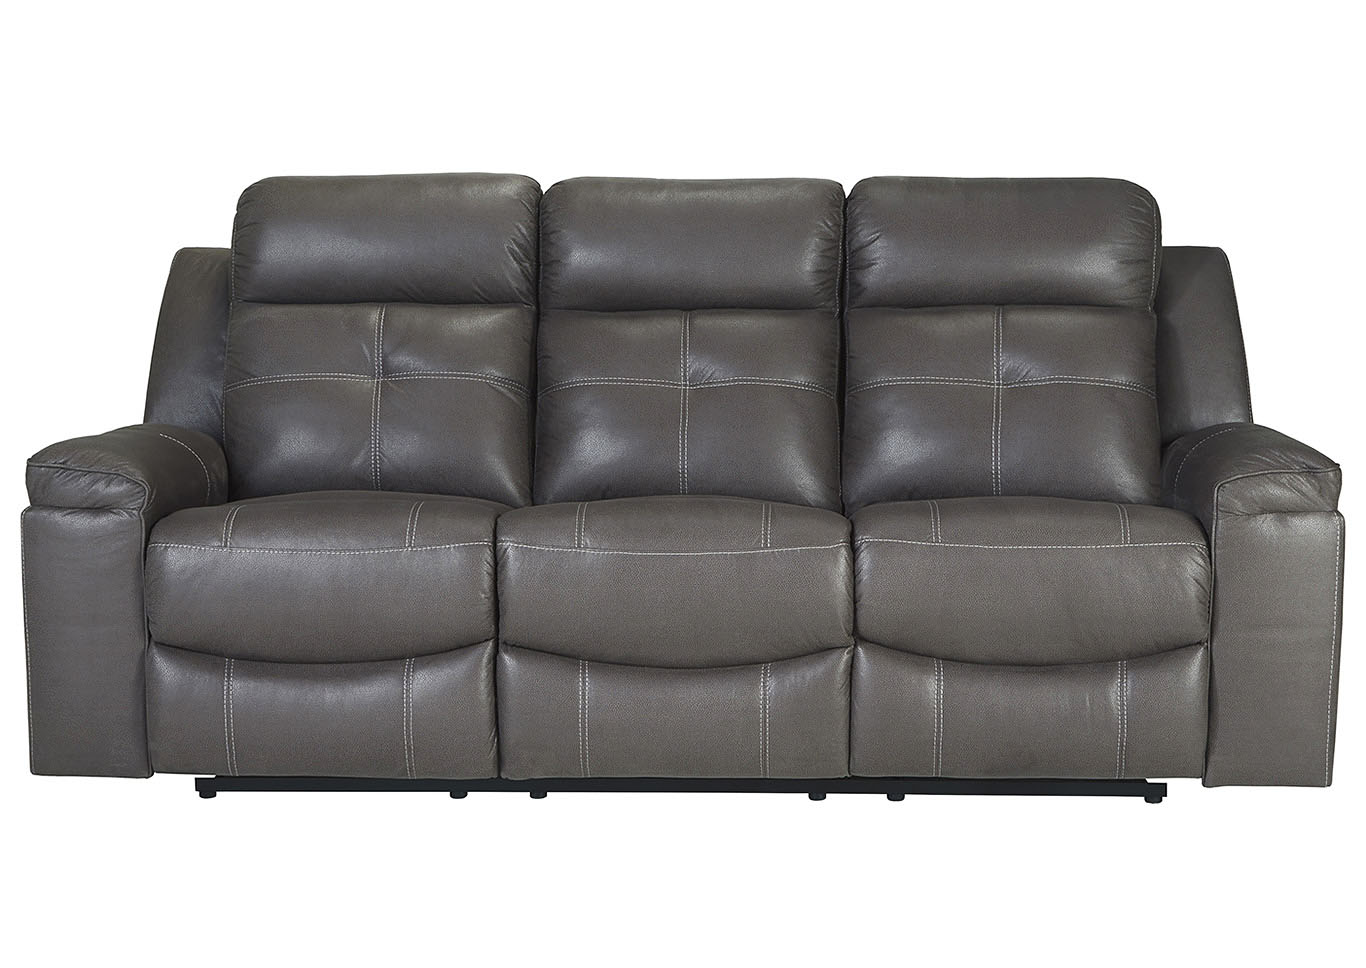 Jesolo Dark Gray Reclining Sofa,Signature Design By Ashley